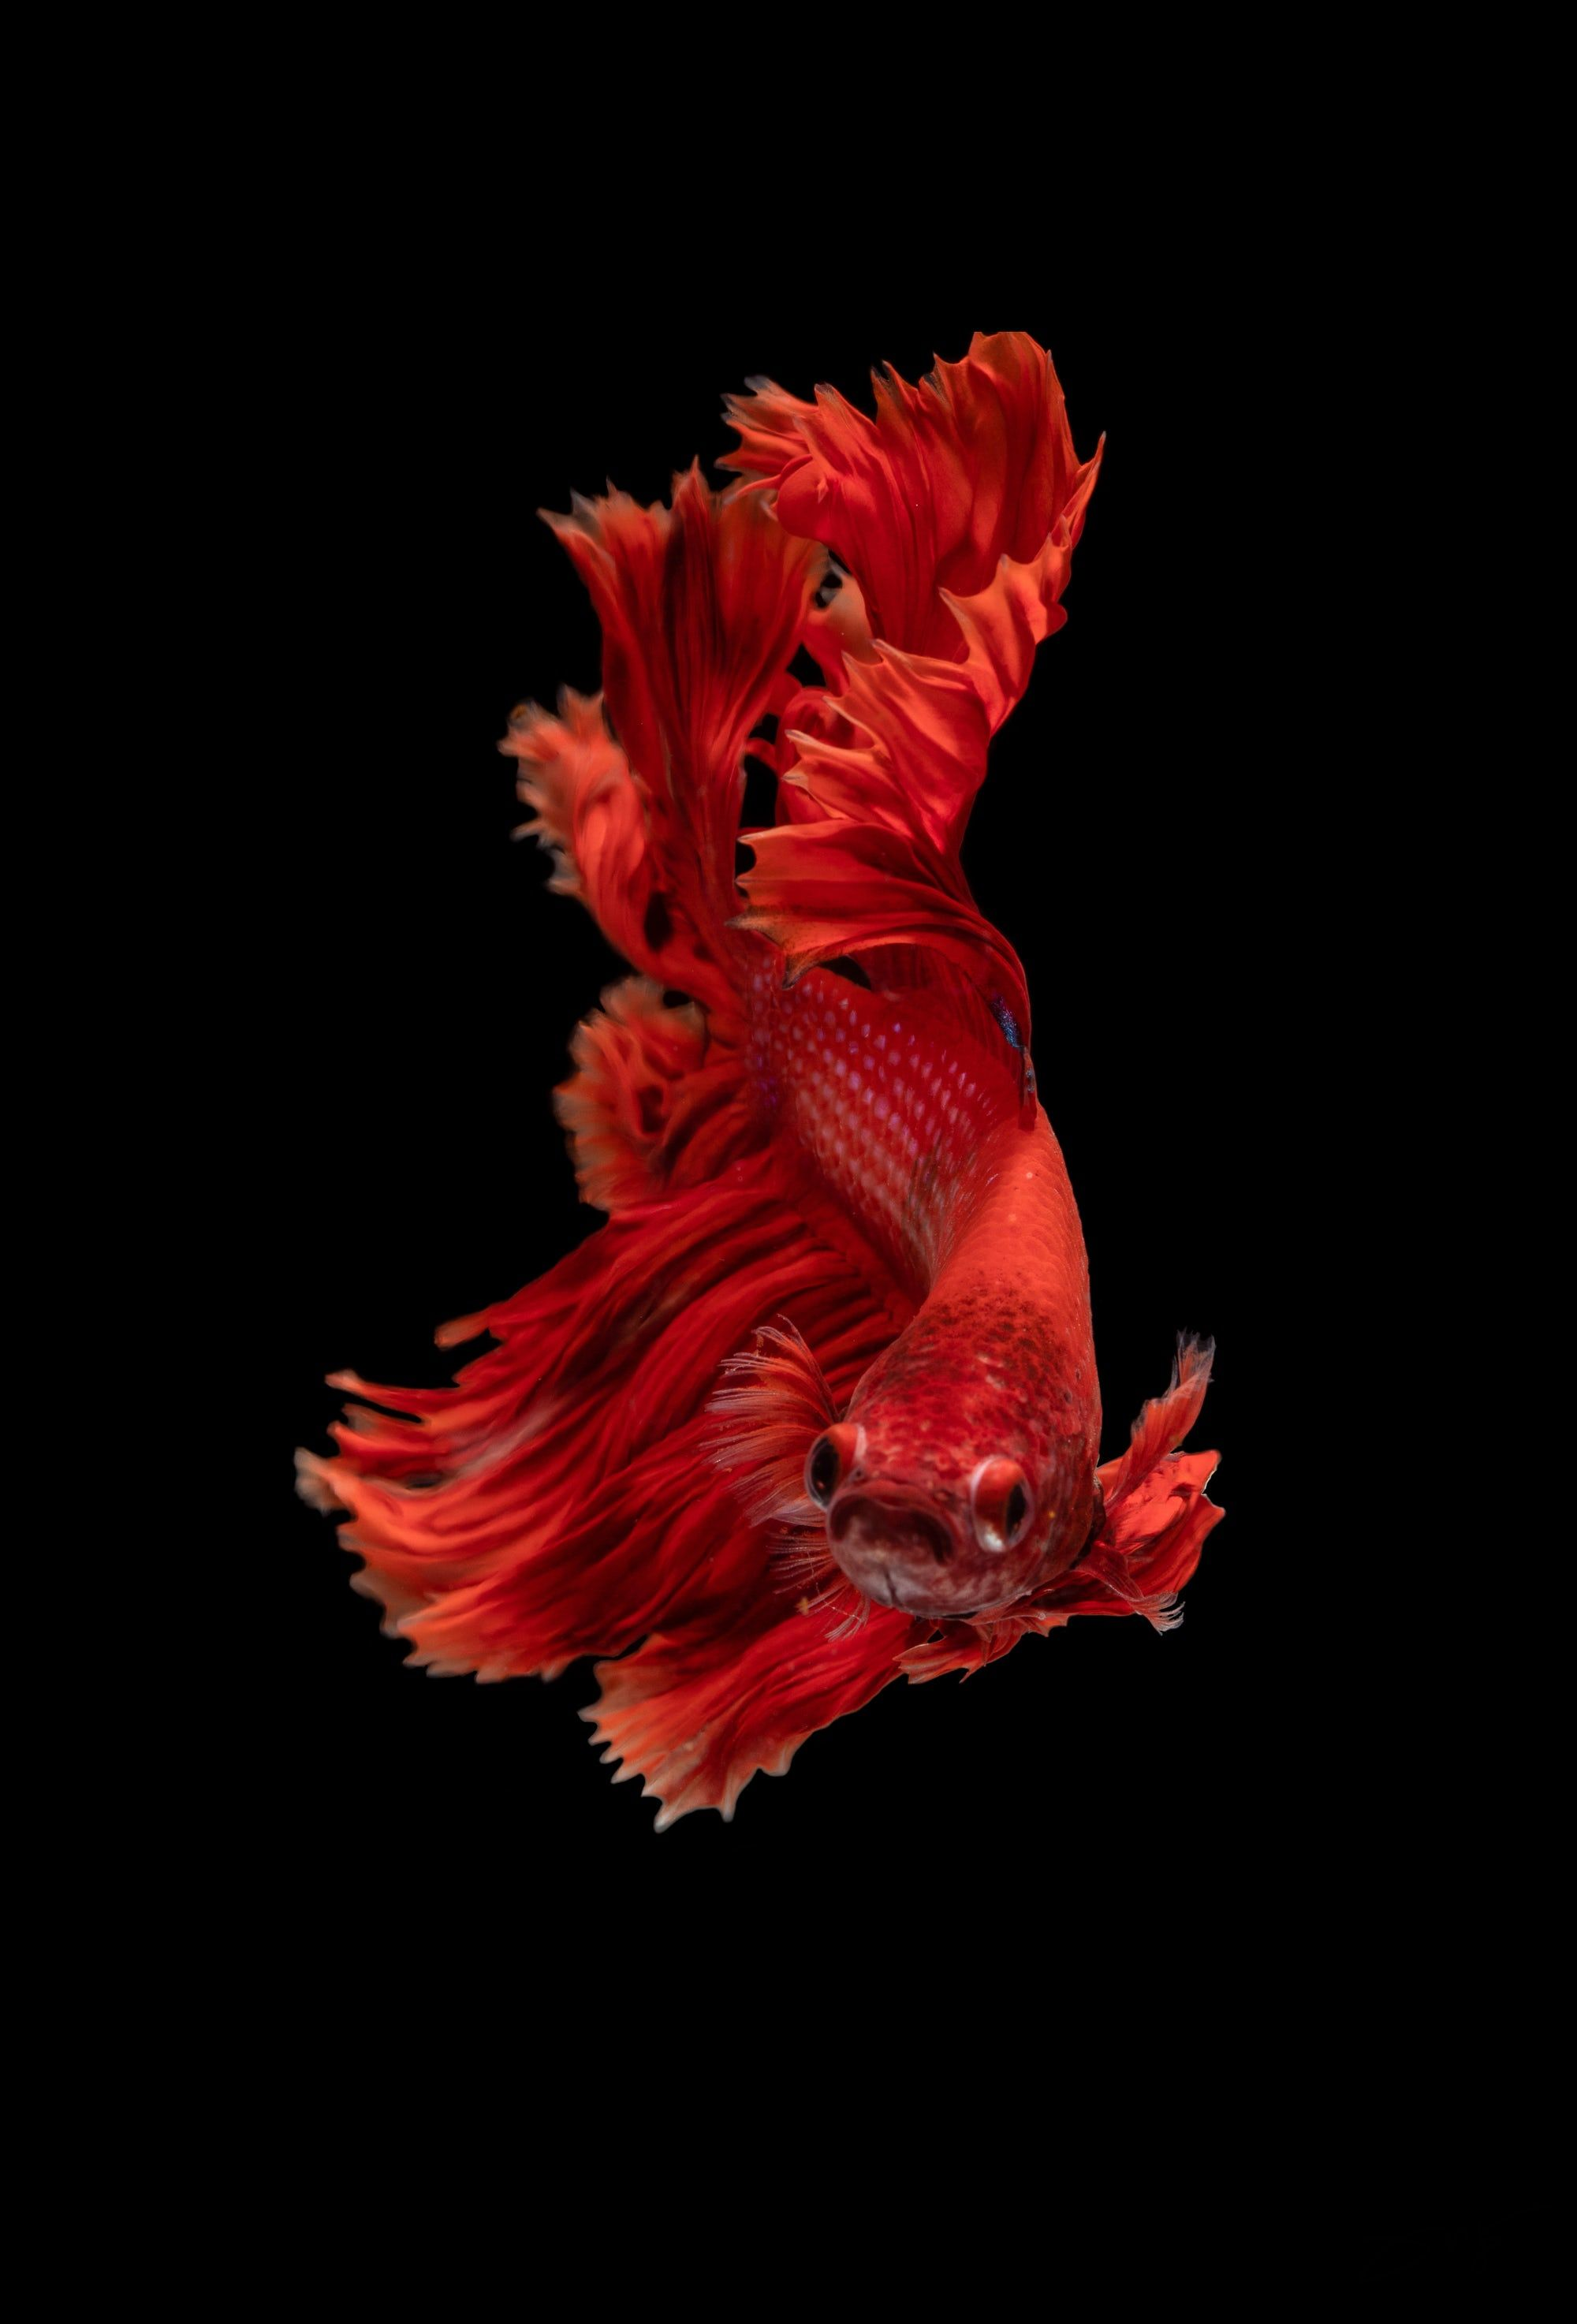 Thanks To Kyaw Tun For Making This Photo Available Freely On Unsplash Siamese Fighting Fish Animal Wallpaper Fish Wallpaper